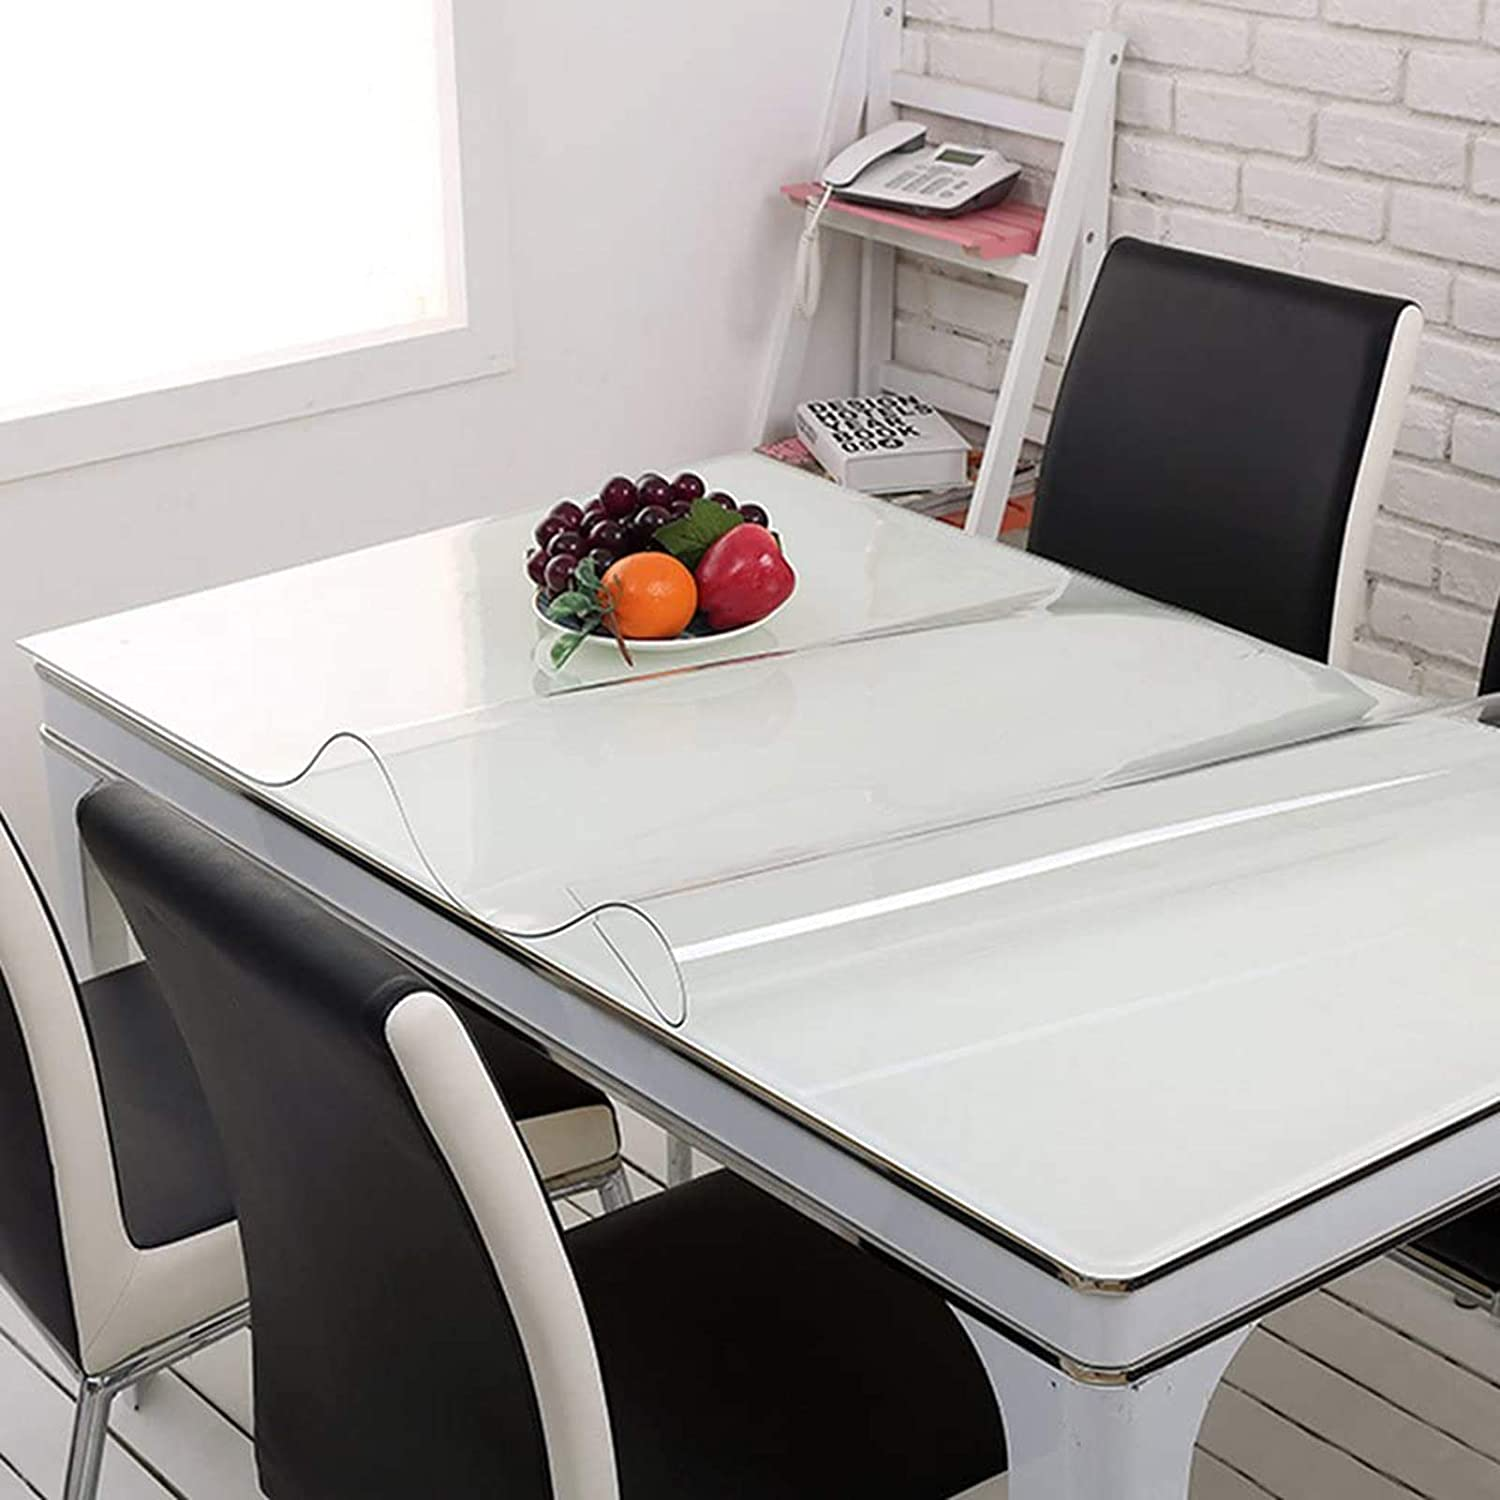 Waterproof Soft Glass Transparent Table Protector Cover Crystal Clear PVC Tablecloth Oilcloth Waterproof Fabric Table Protector seveni Clear PVC Tablecloth 50x50cm//19.69x19.69in